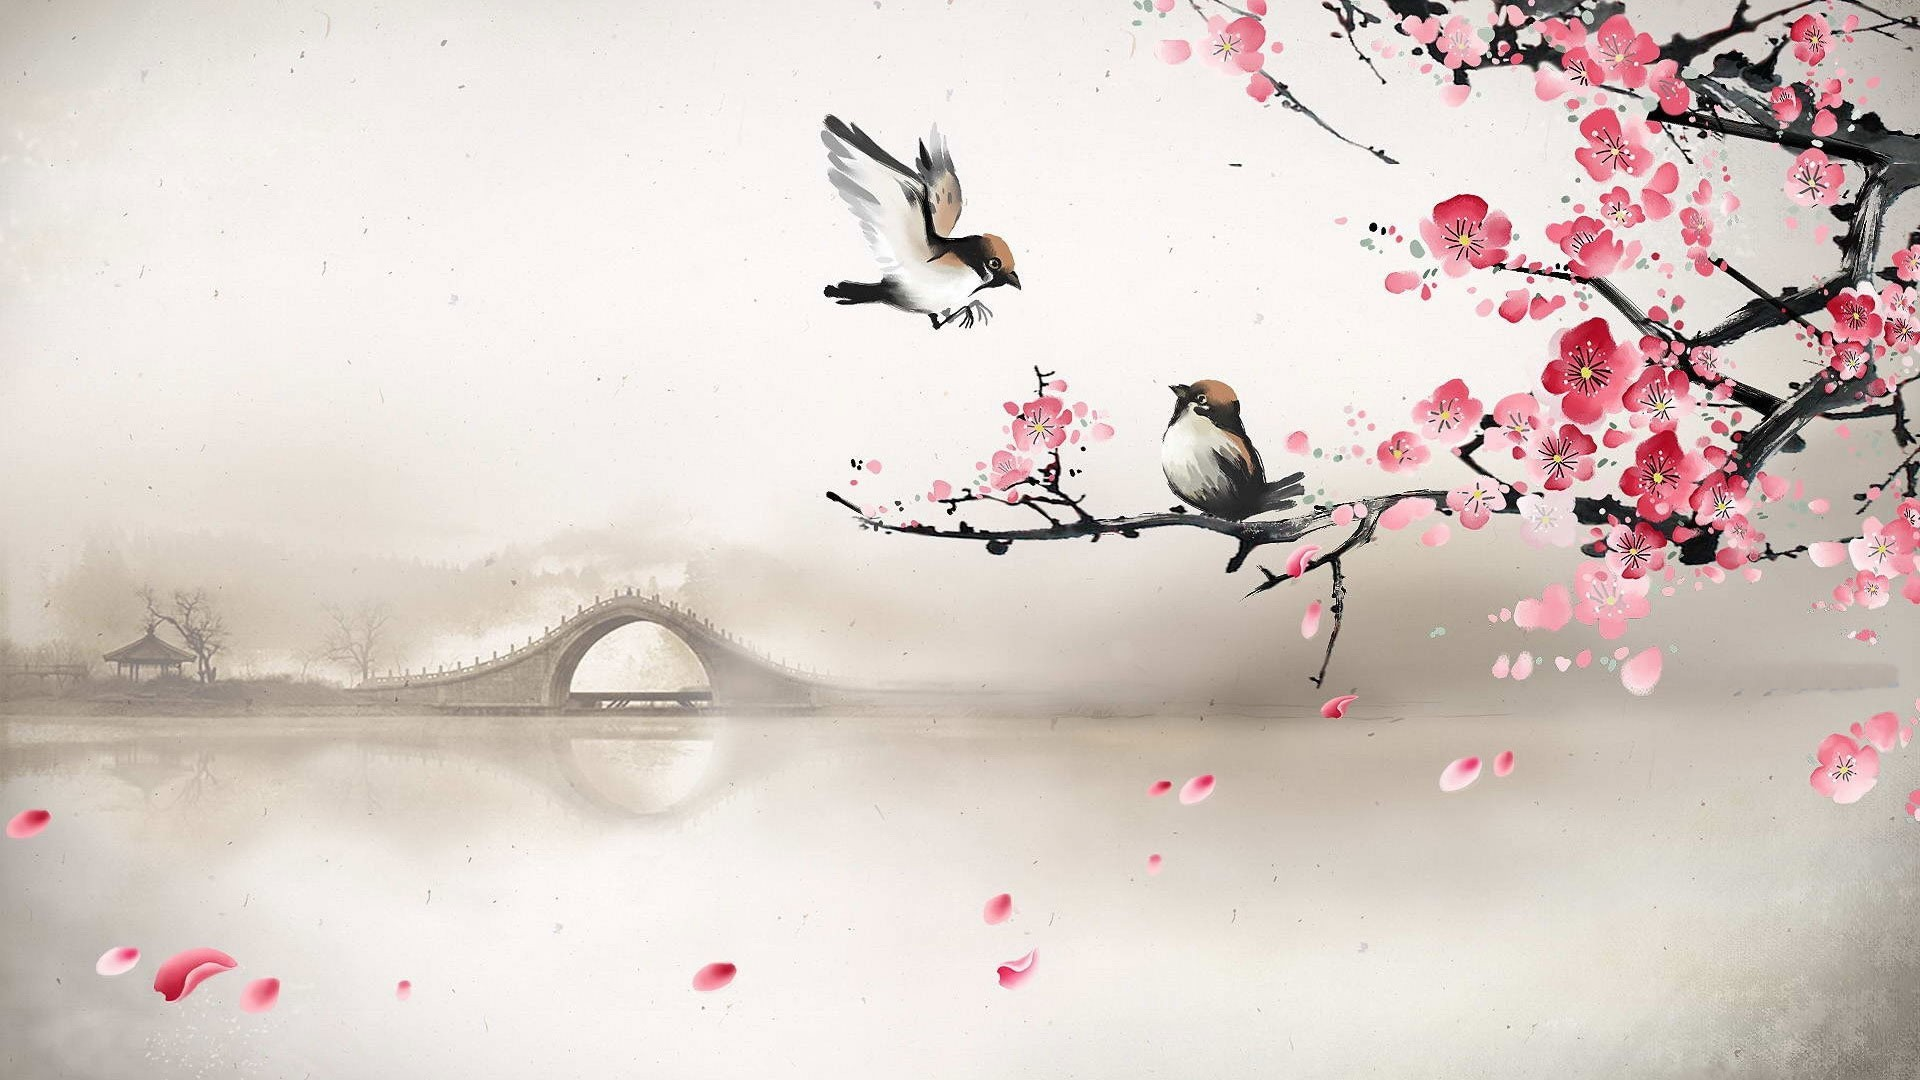 Asian Background Wallpaper 67 Images